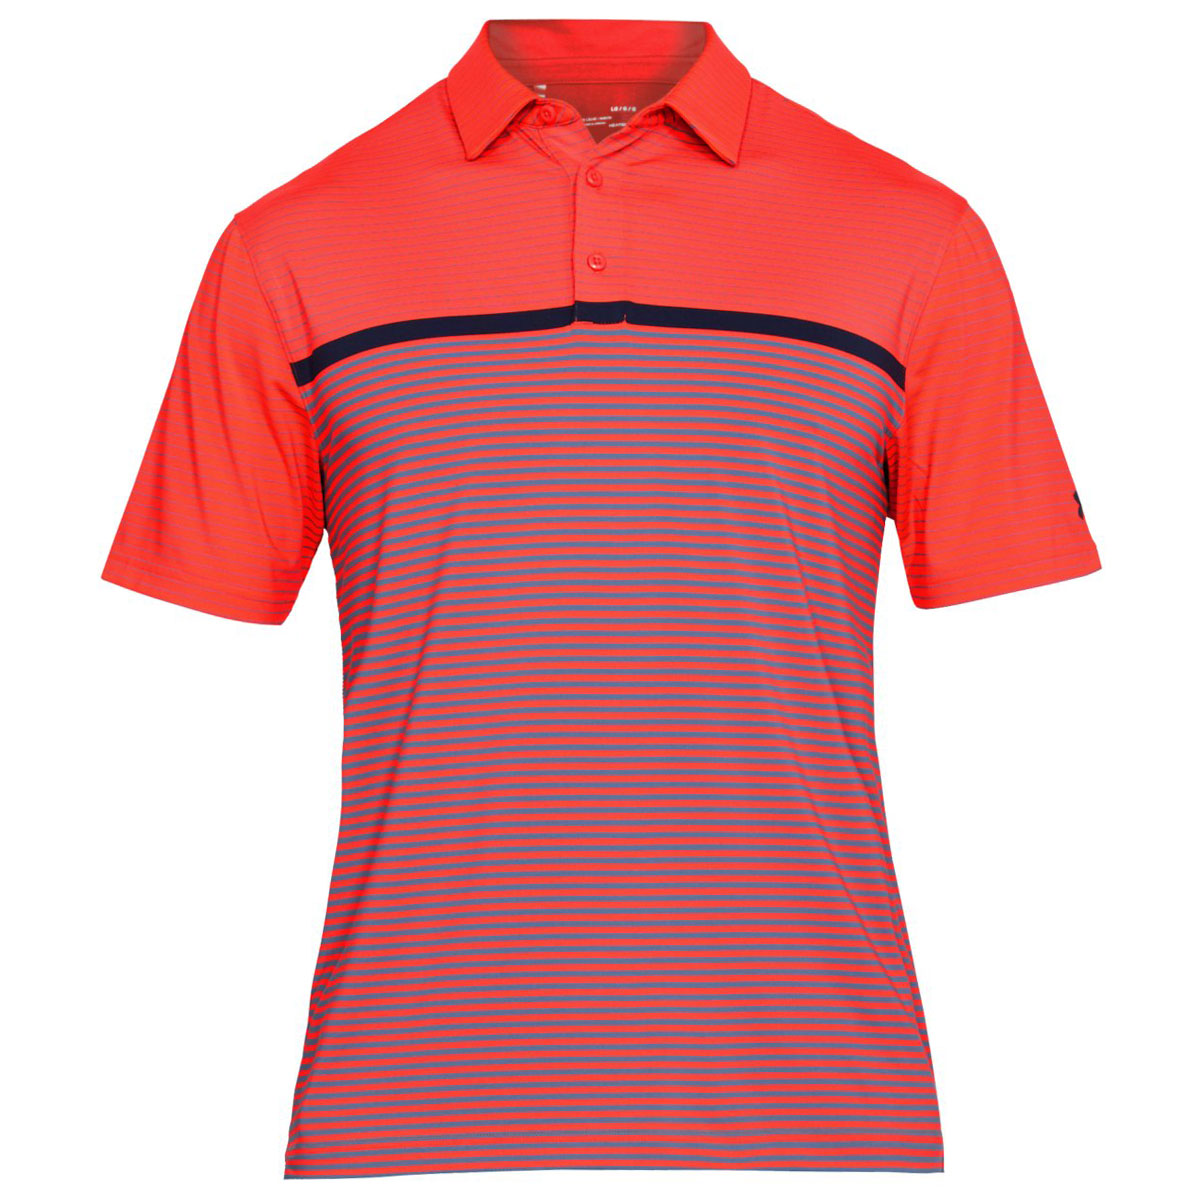 Under-Armour-Mens-Crestable-Playoff-Performance-Golf-Polo-Shirt-50-OFF-RRP thumbnail 26